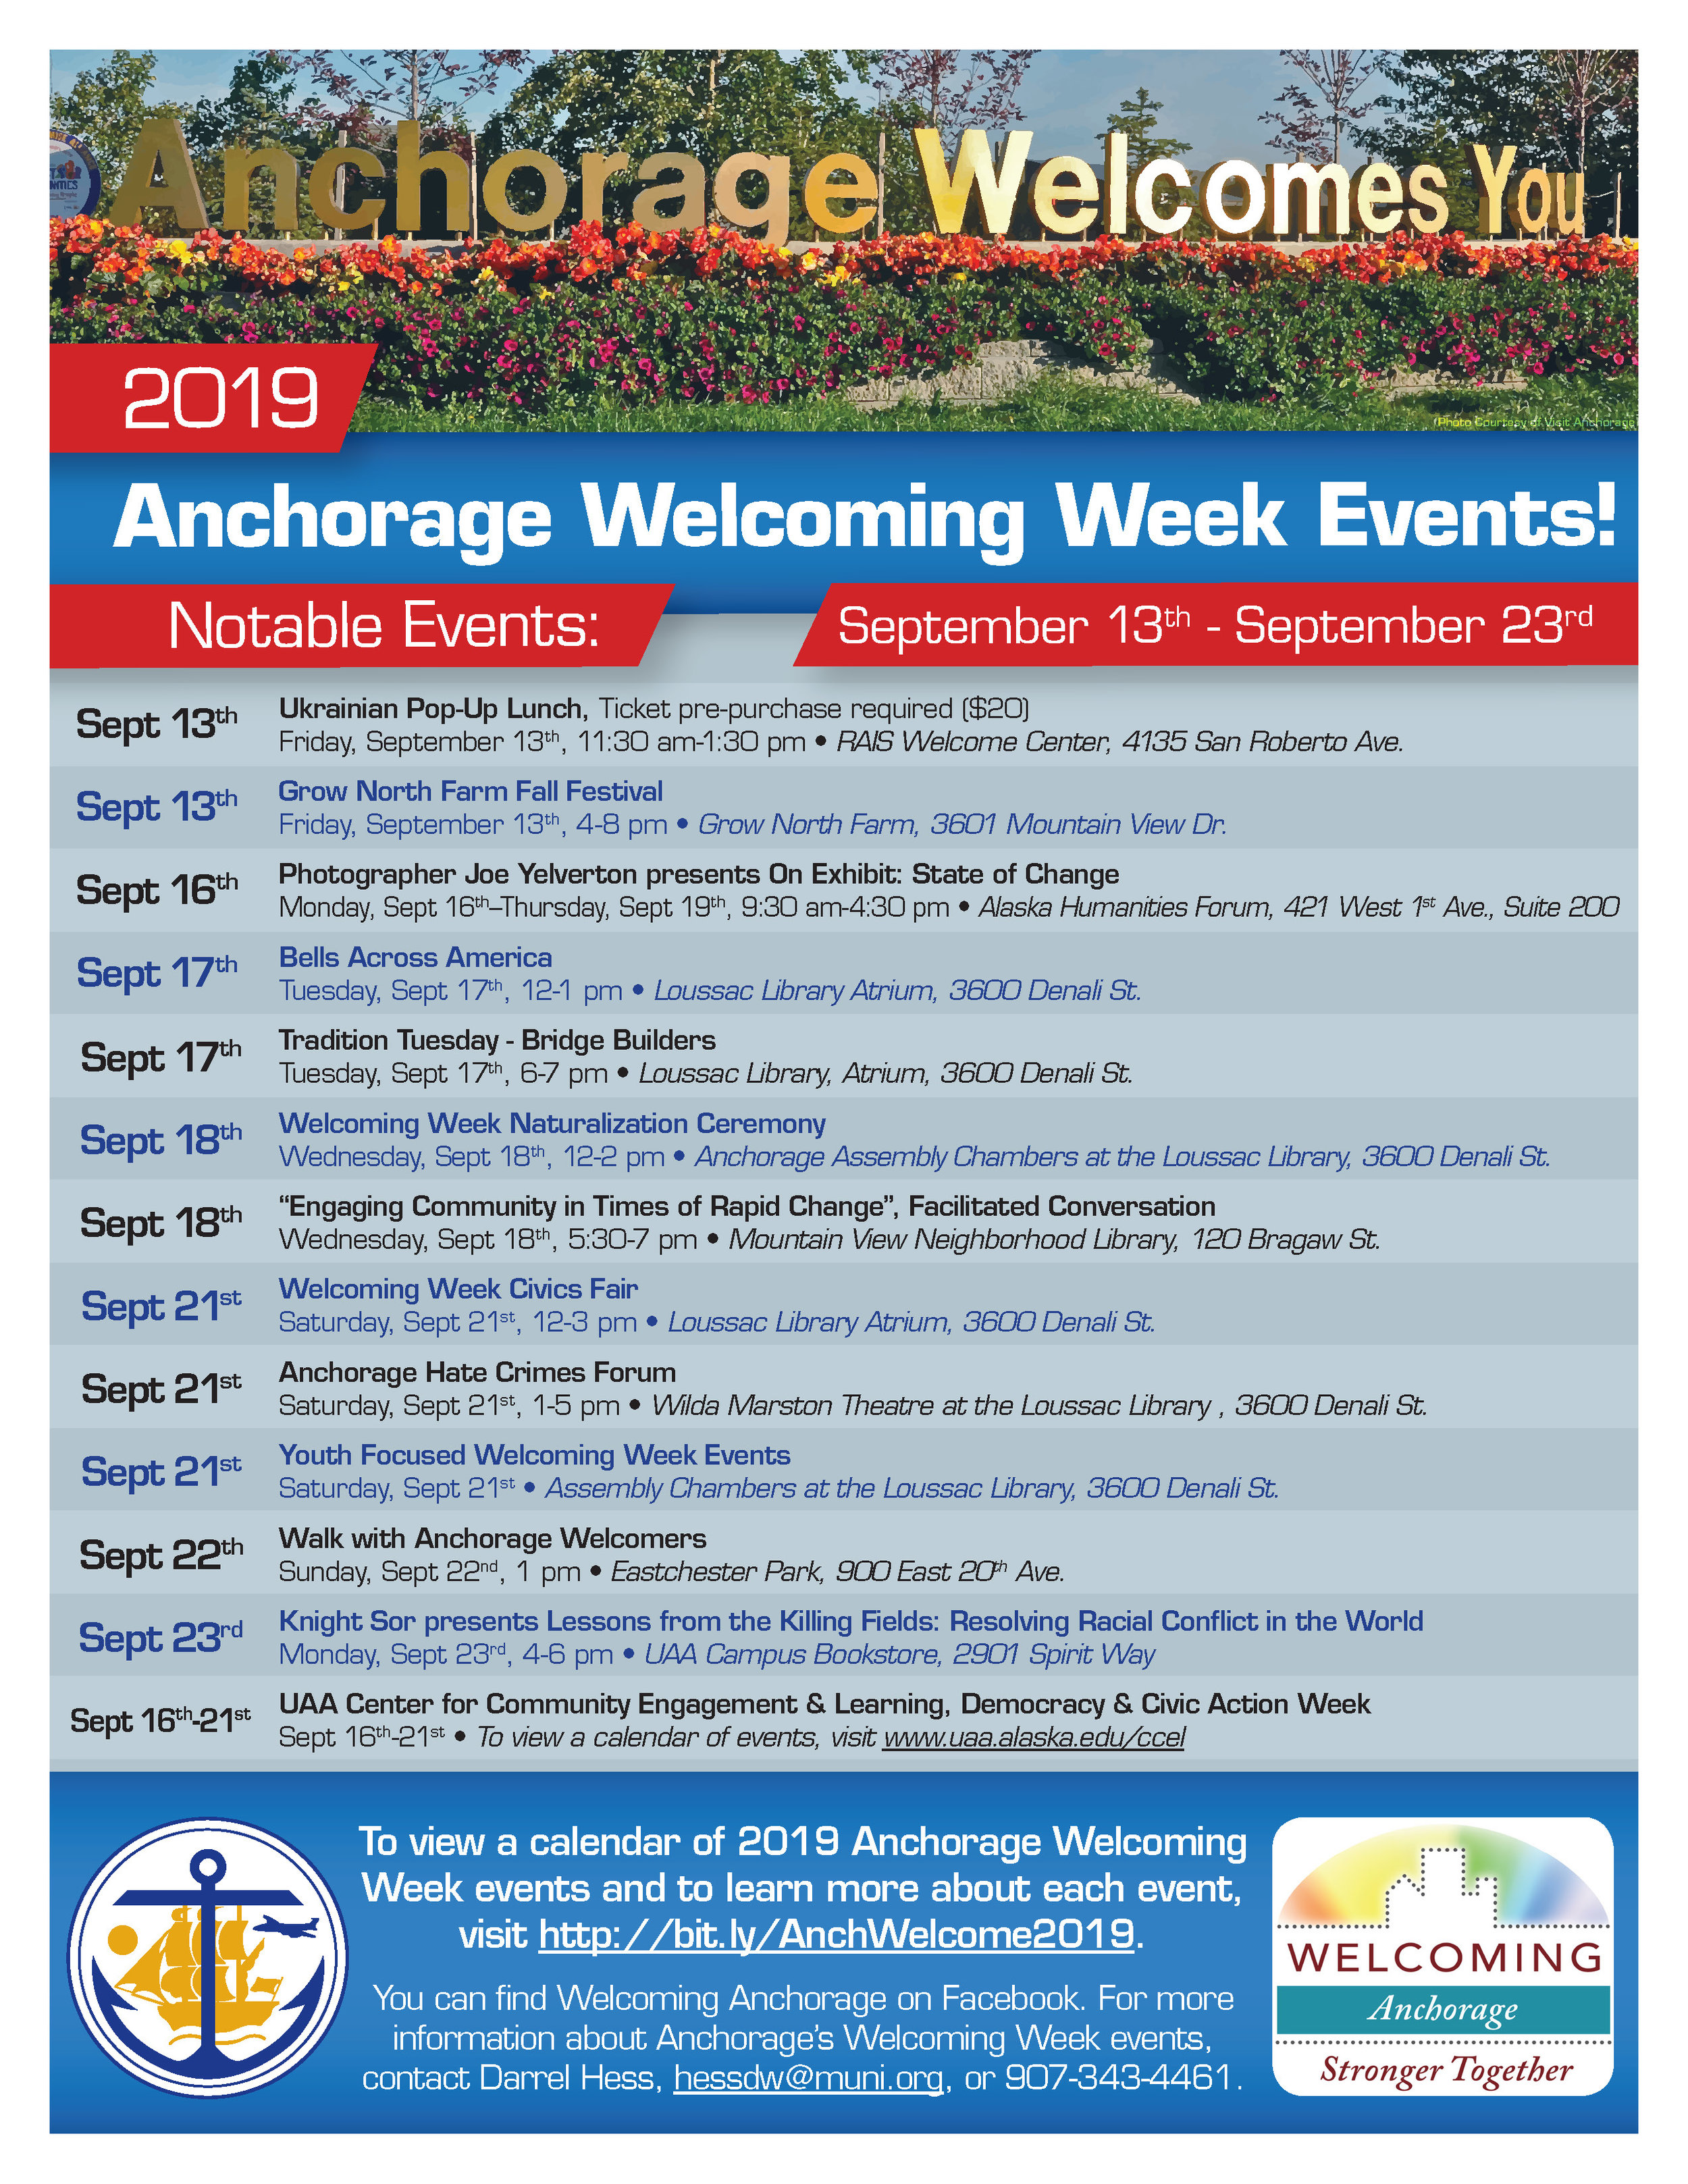 OMB 2019 Anchorage Welcoming Week Events.jpg